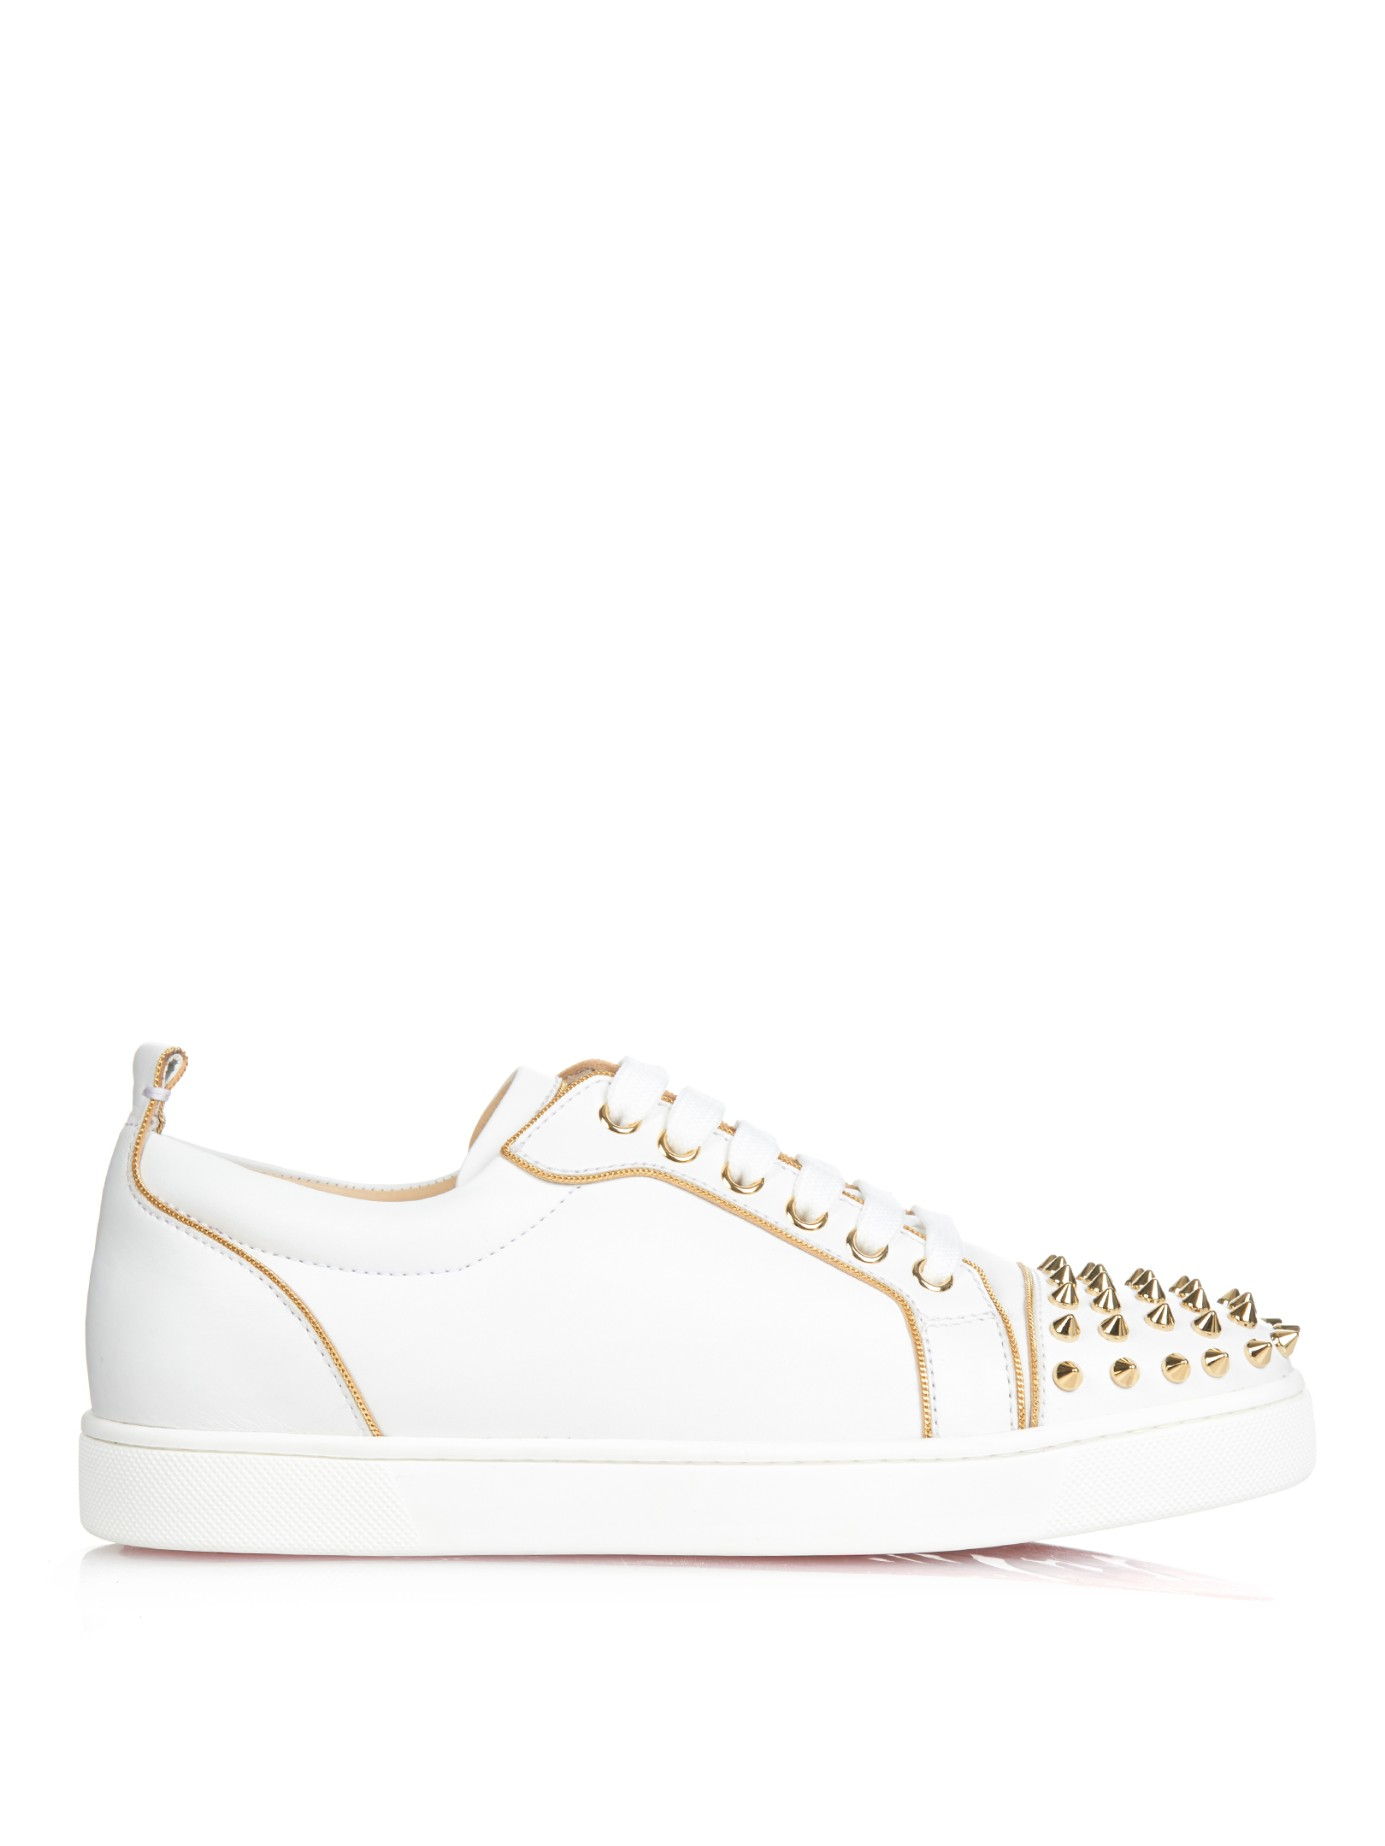 replica cl shoes usa - christian louboutin studded patent leather skate sneakers ...